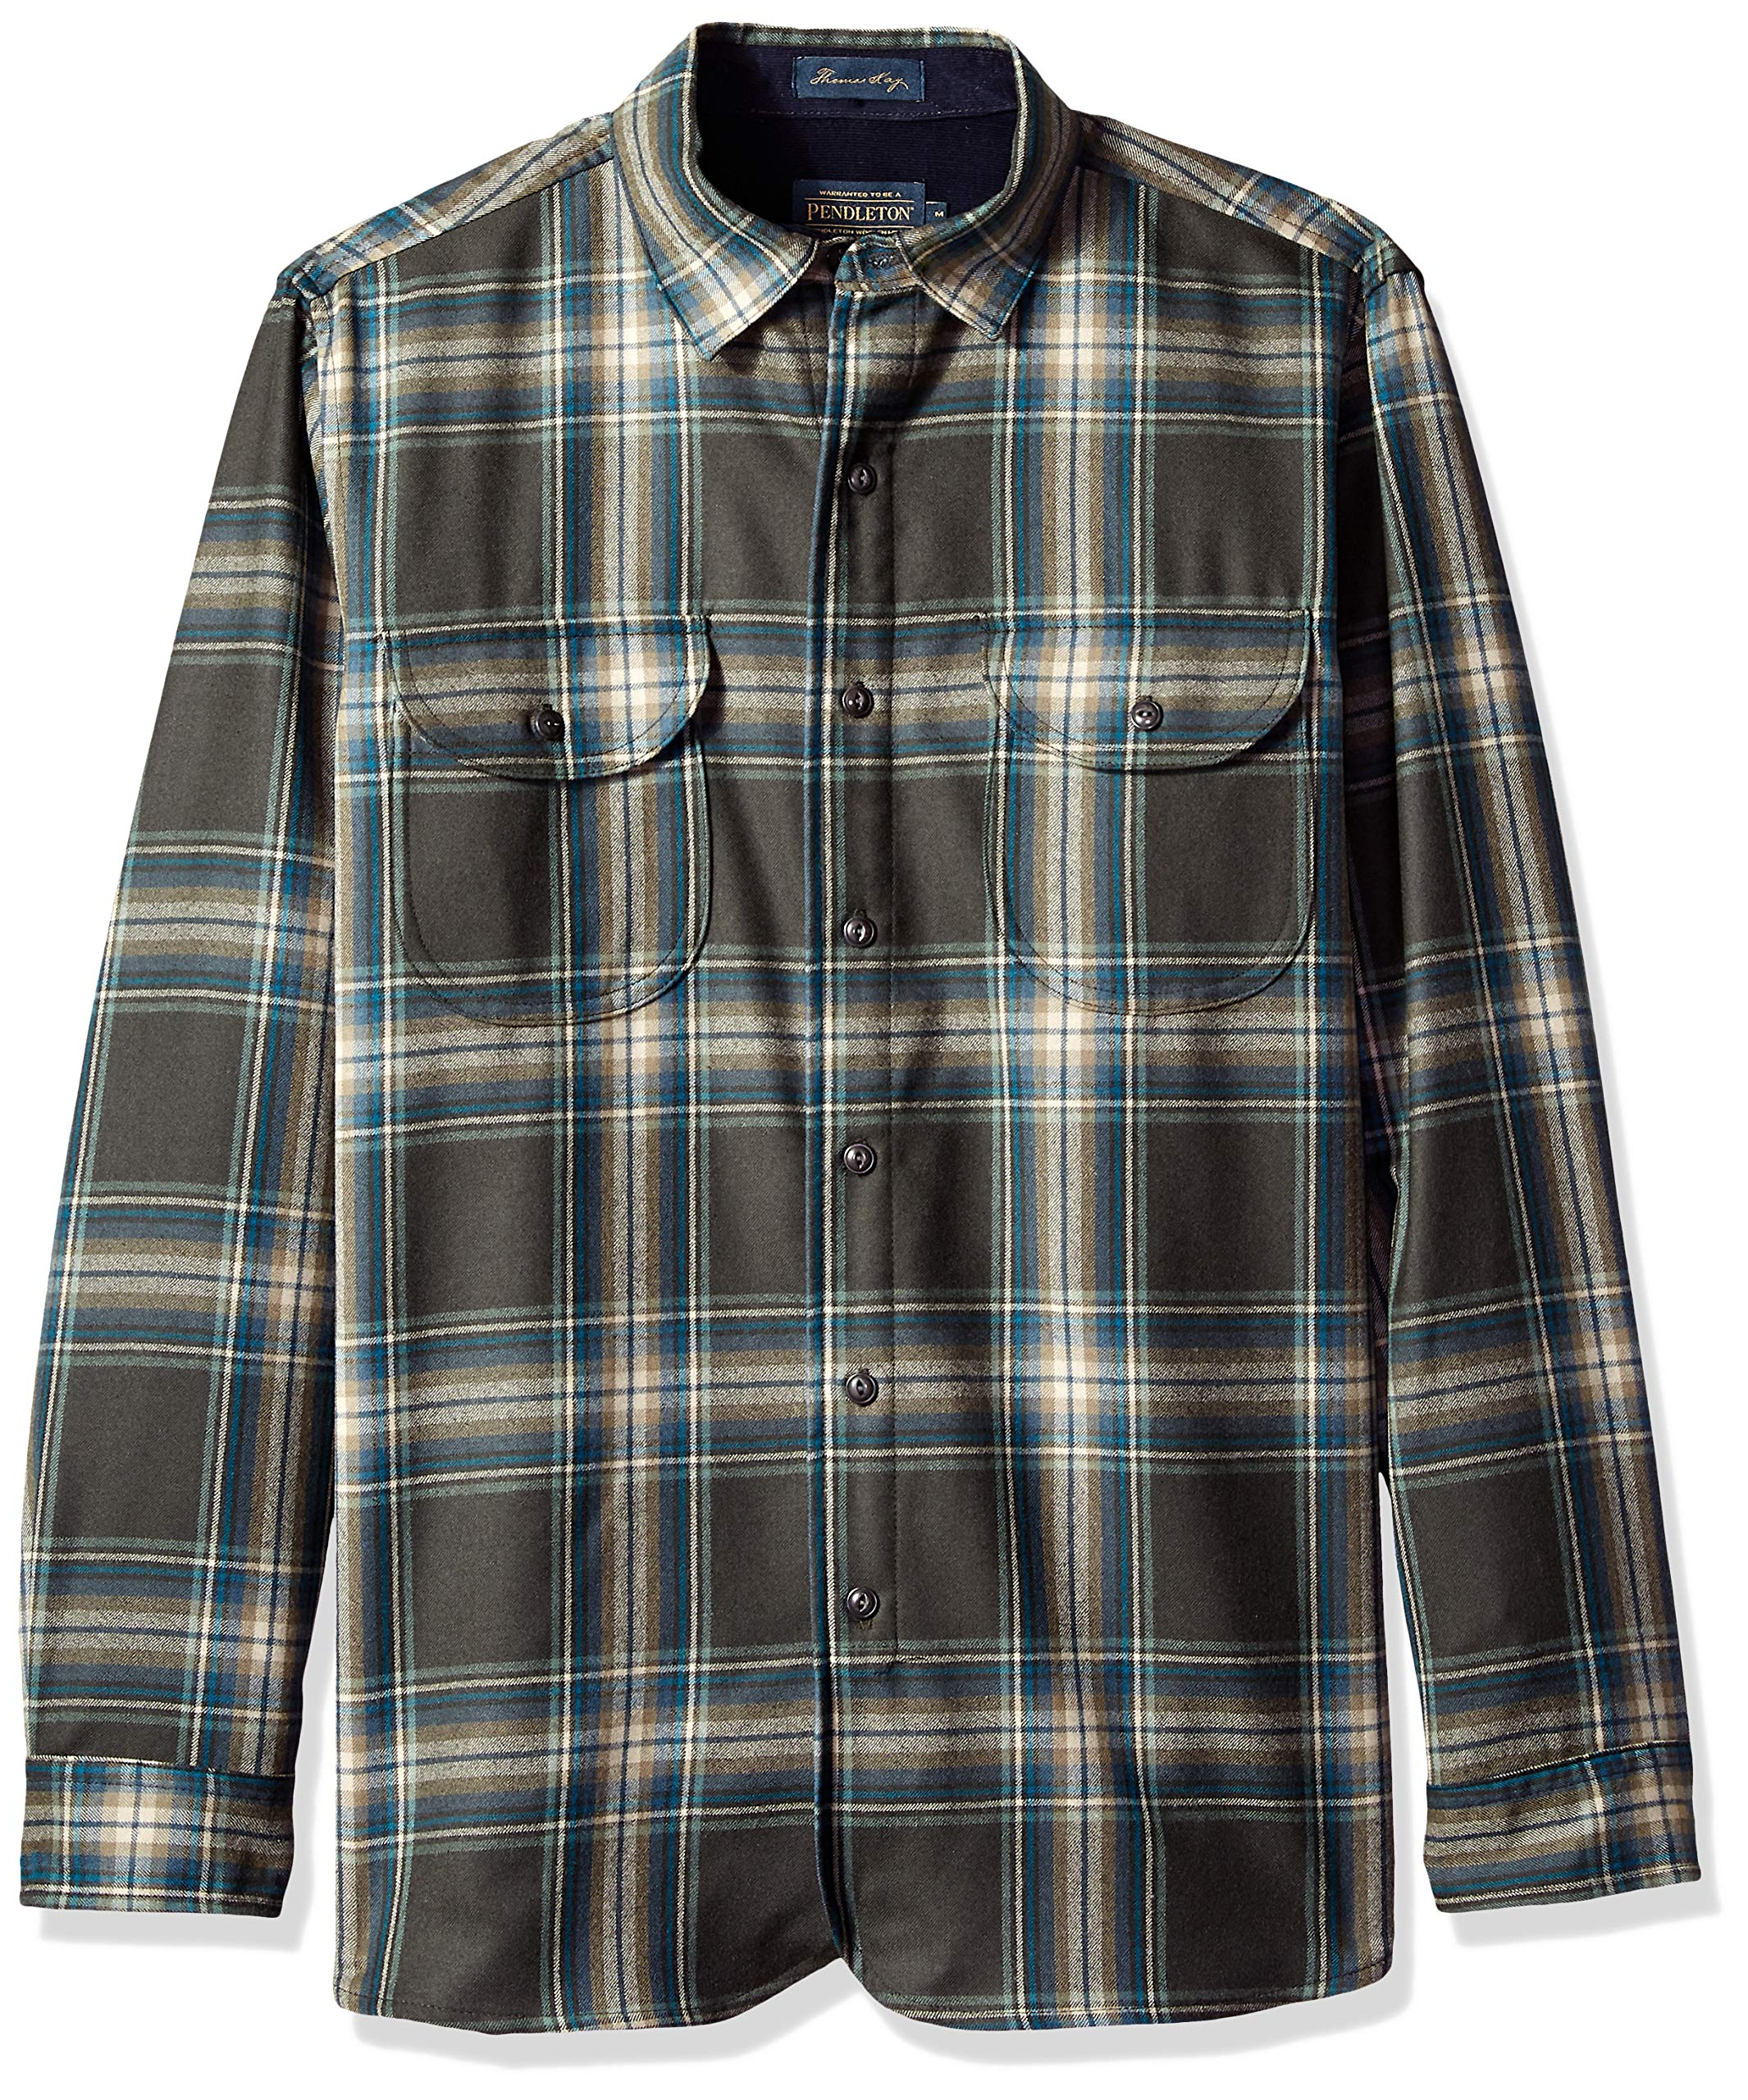 a5c36e86 Galleon - Pendleton Men's Long Sleeve Fitted Buckley Shirt, Grey/Blue  Plaid, SM